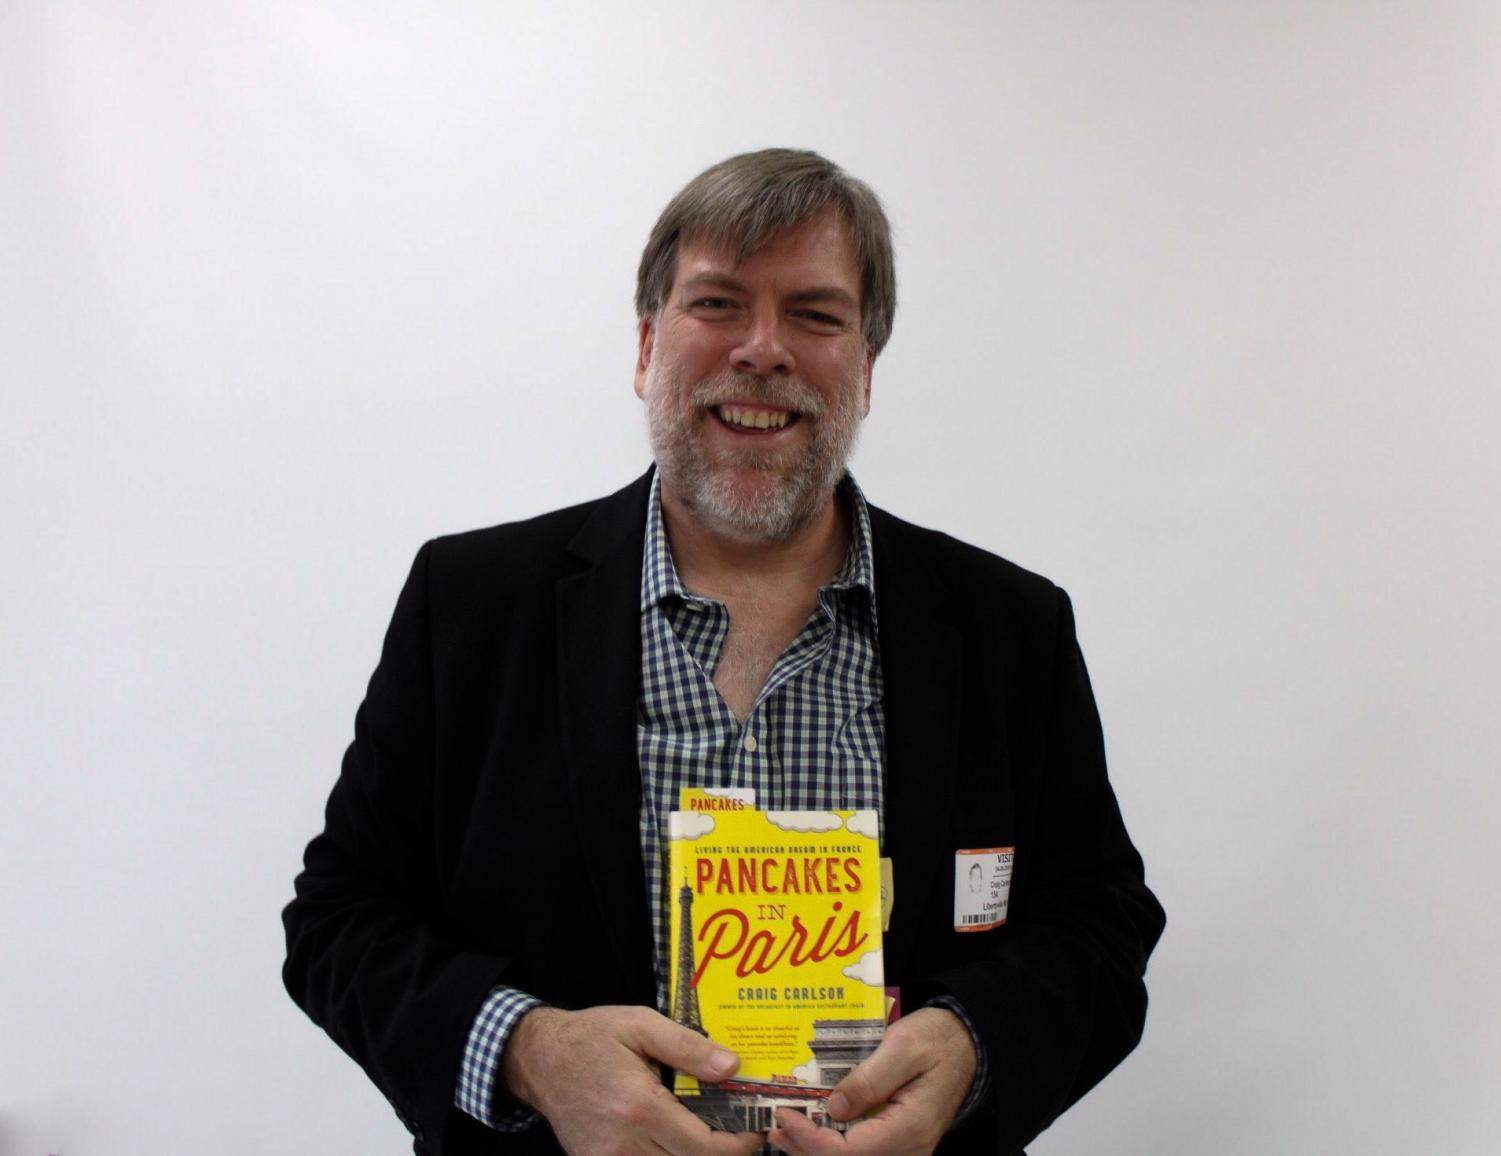 Craig Carlson poses with his book, Pancakes in Paris, which details the story of how Mr. Carlson came to open his own restaurant in Paris.